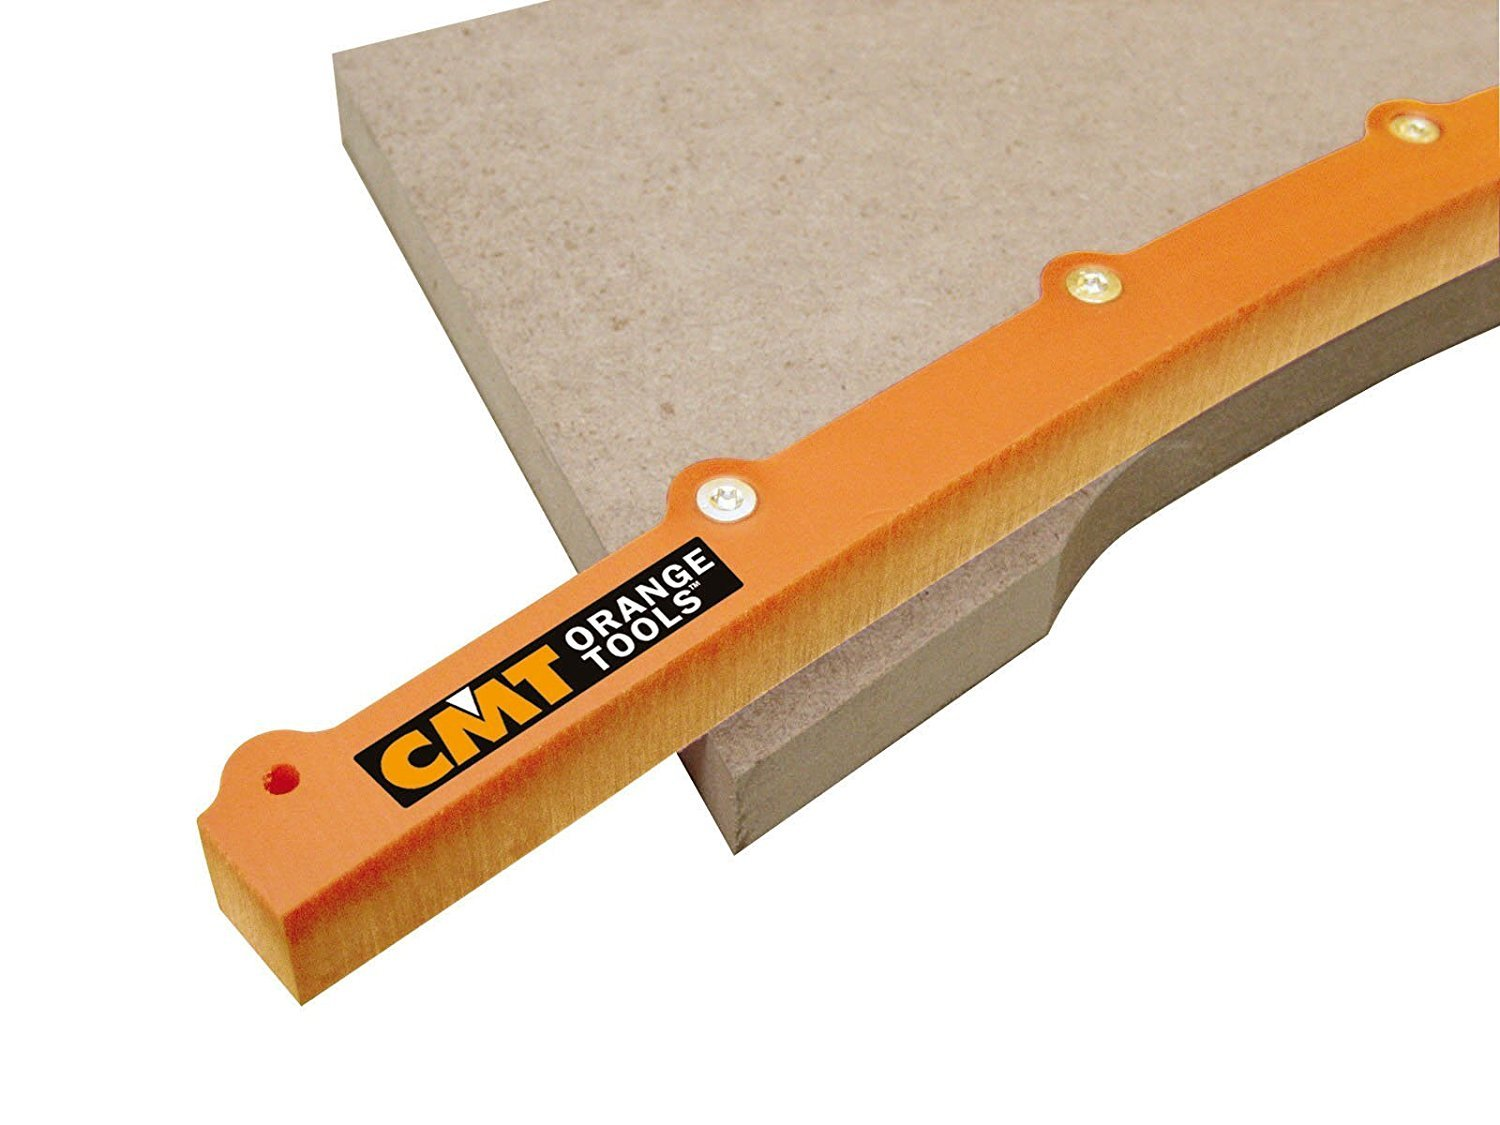 CMT TMP-1200 Flexible Template for Curved and Arched Routing, 15/32 X 15/32-Inch by CMT